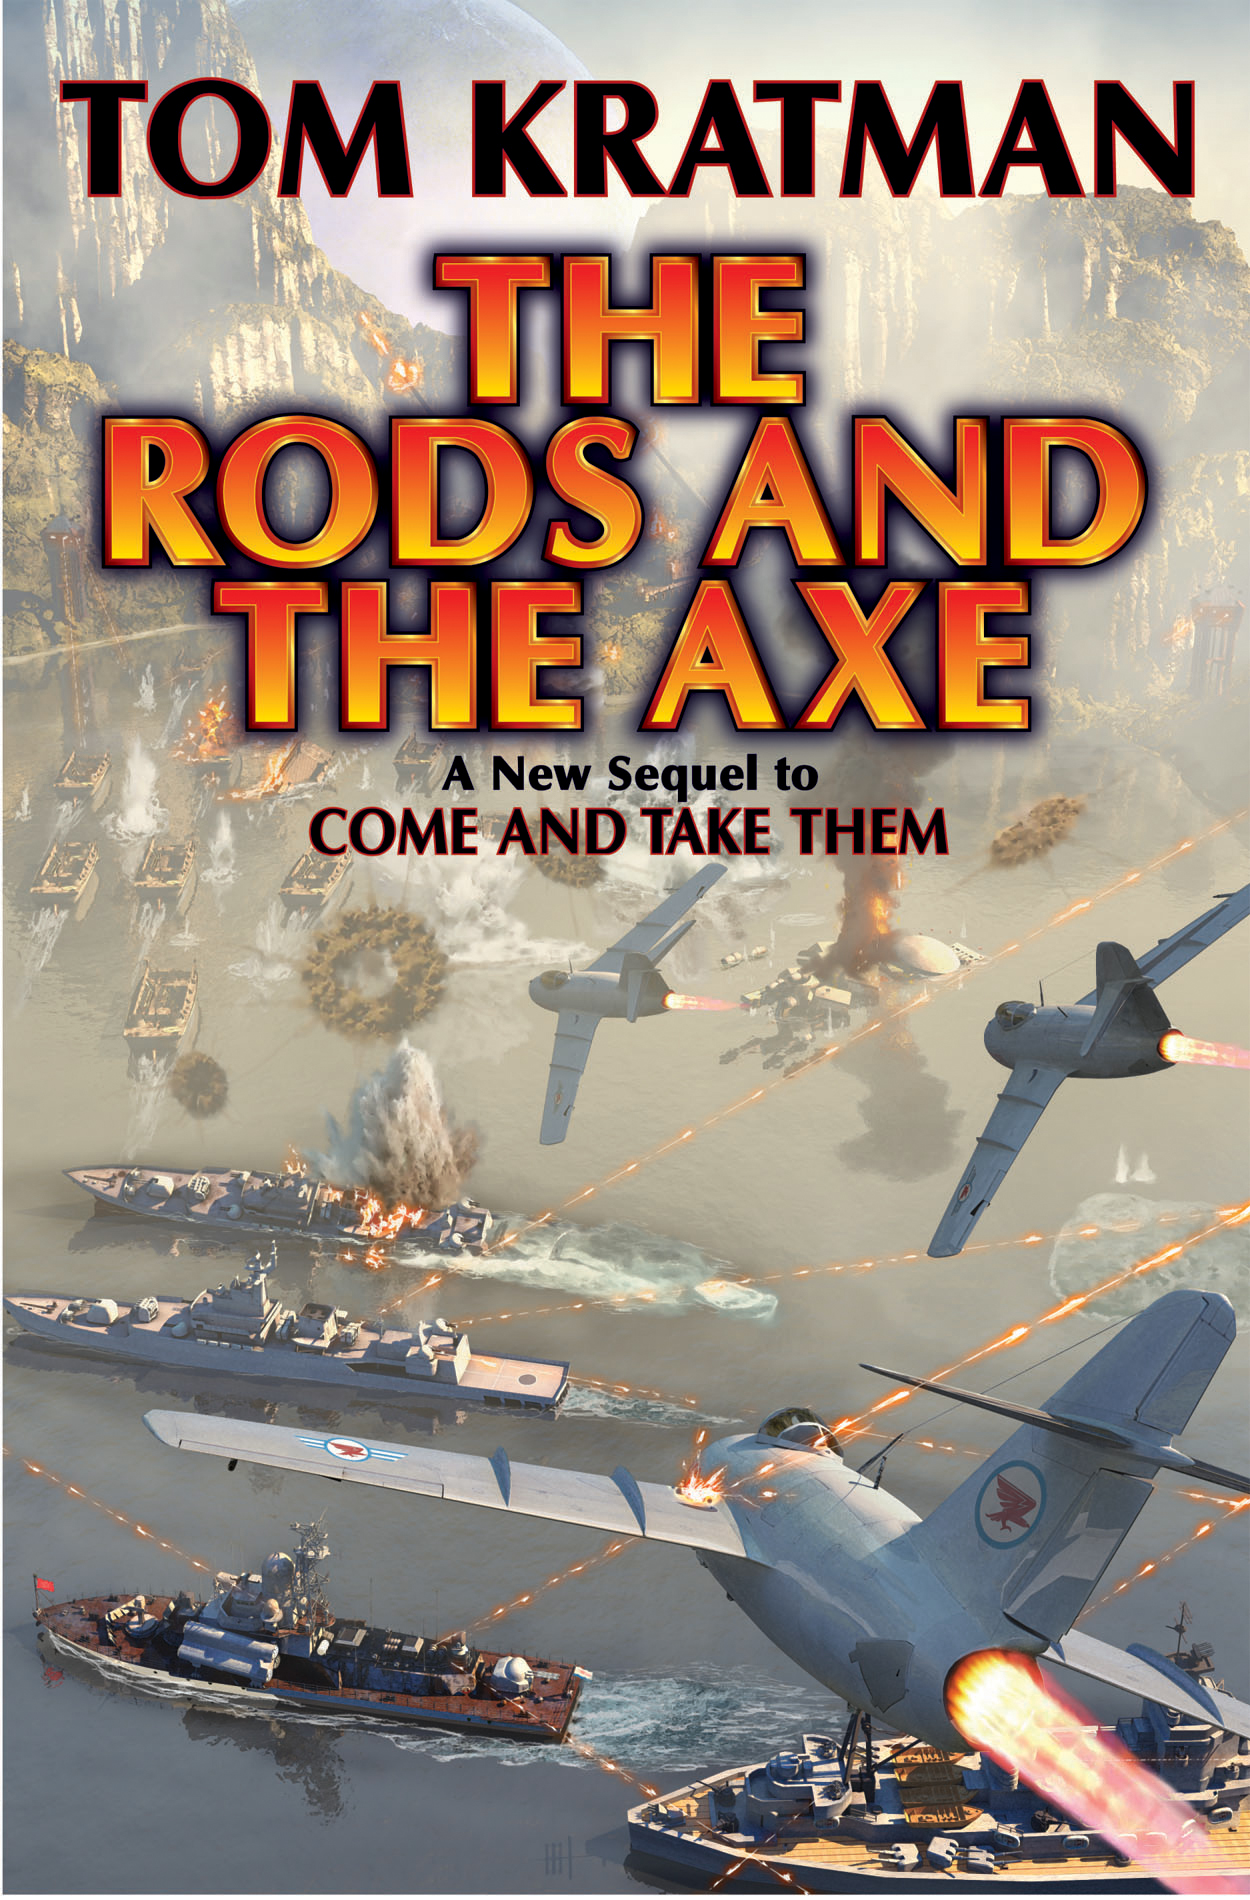 Rods-and-the-axe-9781476736563_hr